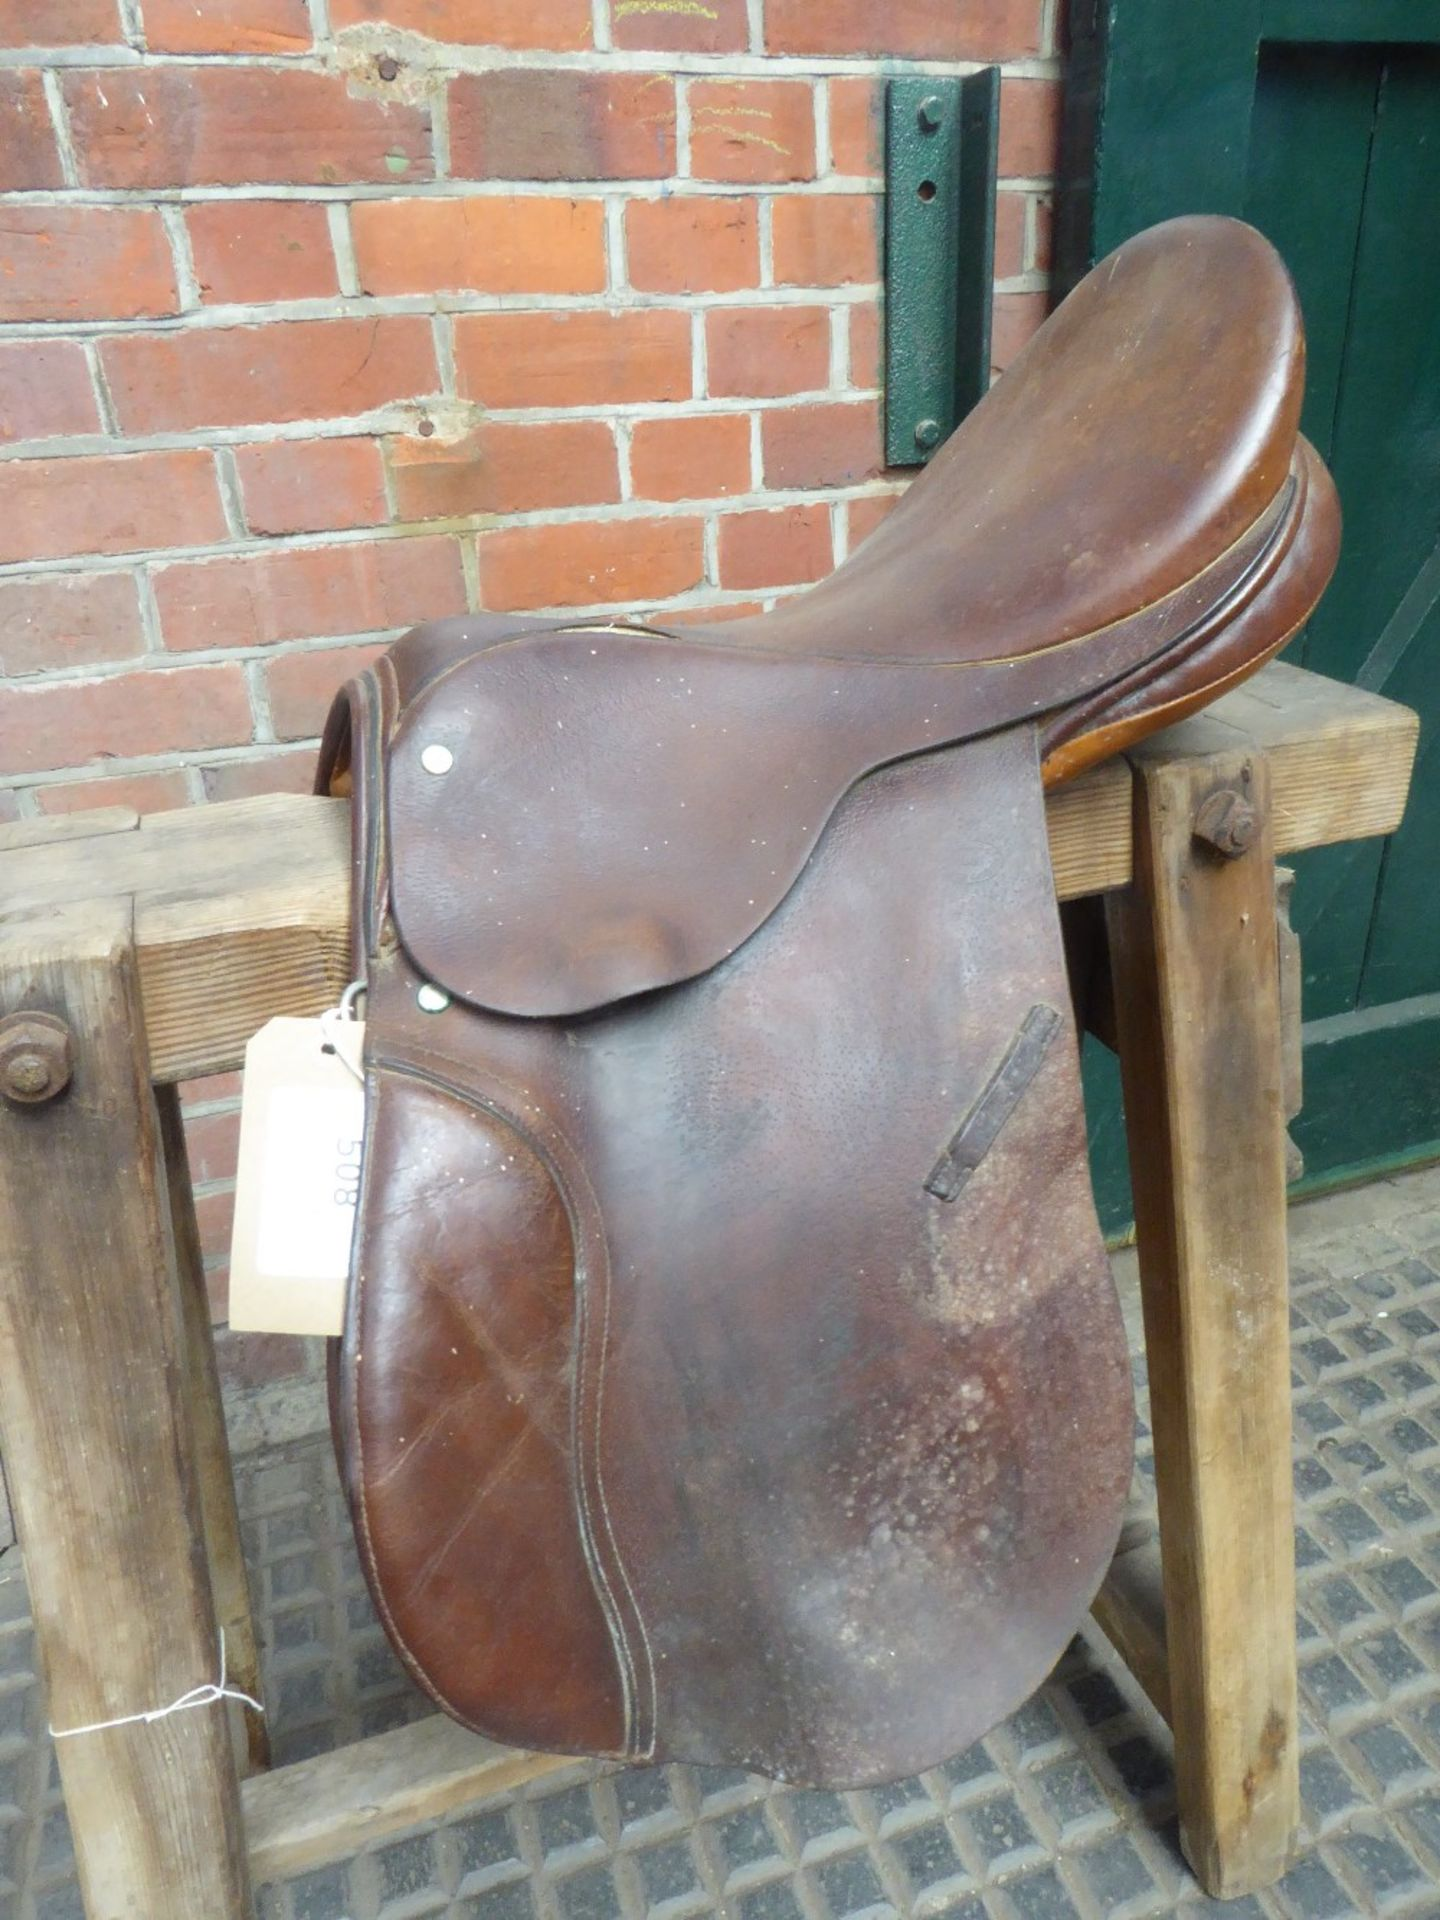 Brown leather 16ins saddle by M.E.Howey, D-D 7ins